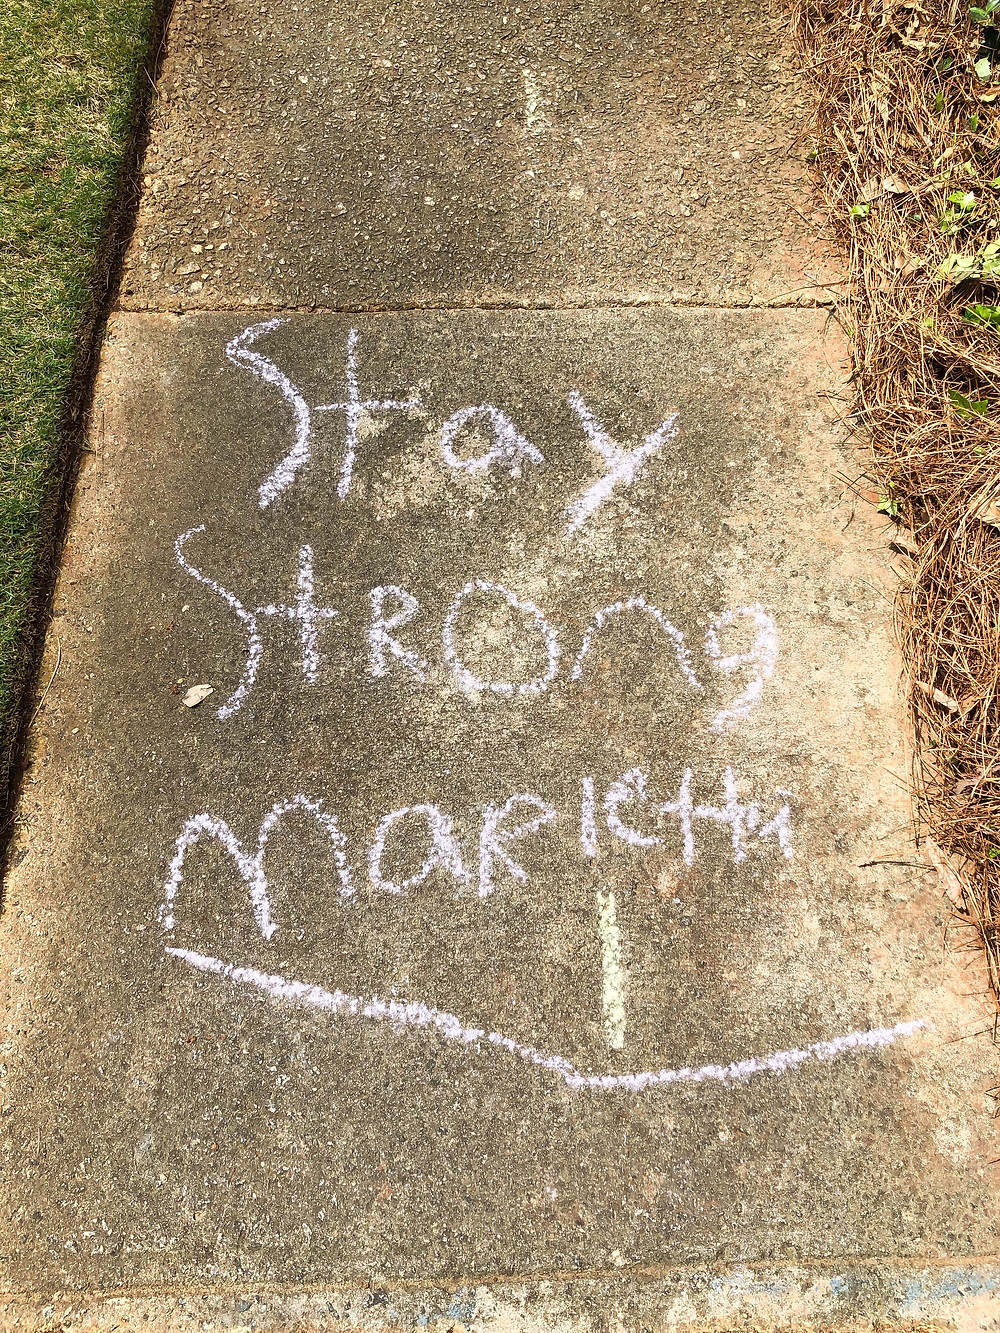 Stay Strong Marietta sidewalk chalk art written by children during pandemic in Marietta Georgia, master sommelier, travel, brewery, australia, chef, wine